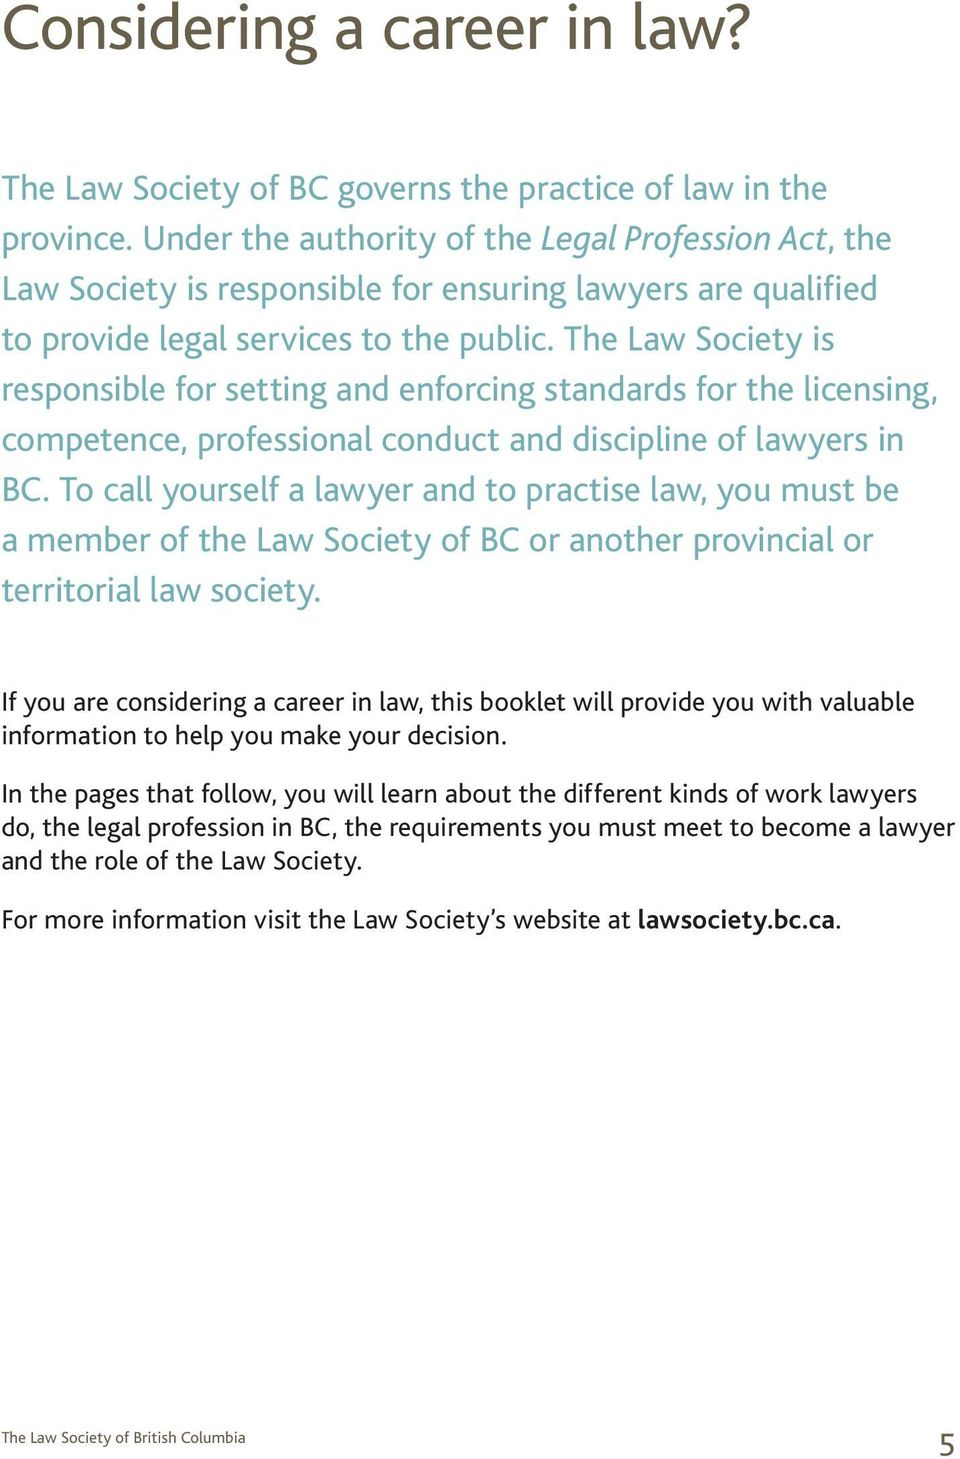 The Law Society is responsible for setting and enforcing standards for the licensing, competence, professional conduct and discipline of lawyers in BC.